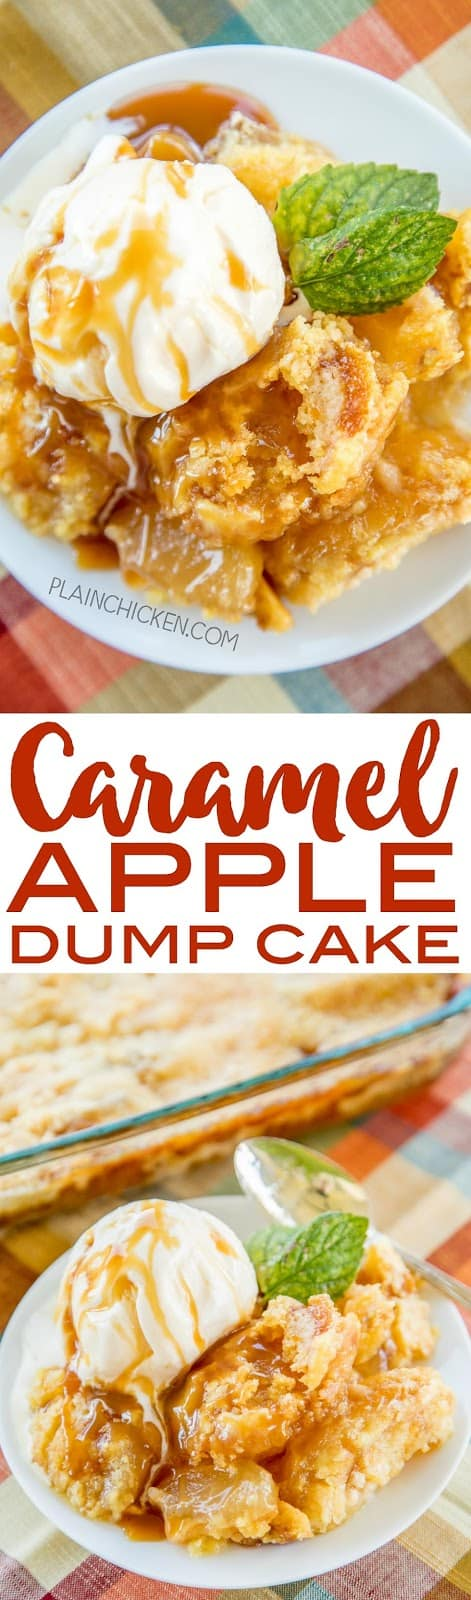 Caramel Apple Dump Cake - tastes like Fall Y'all!! With only 4 simple ingredients, you can't go wrong with this easy dessert recipe! Great for a crowd. Serve warm with some vanilla ice cream or fresh whipped cream. I never have any leftovers! A real crowd pleaser!!